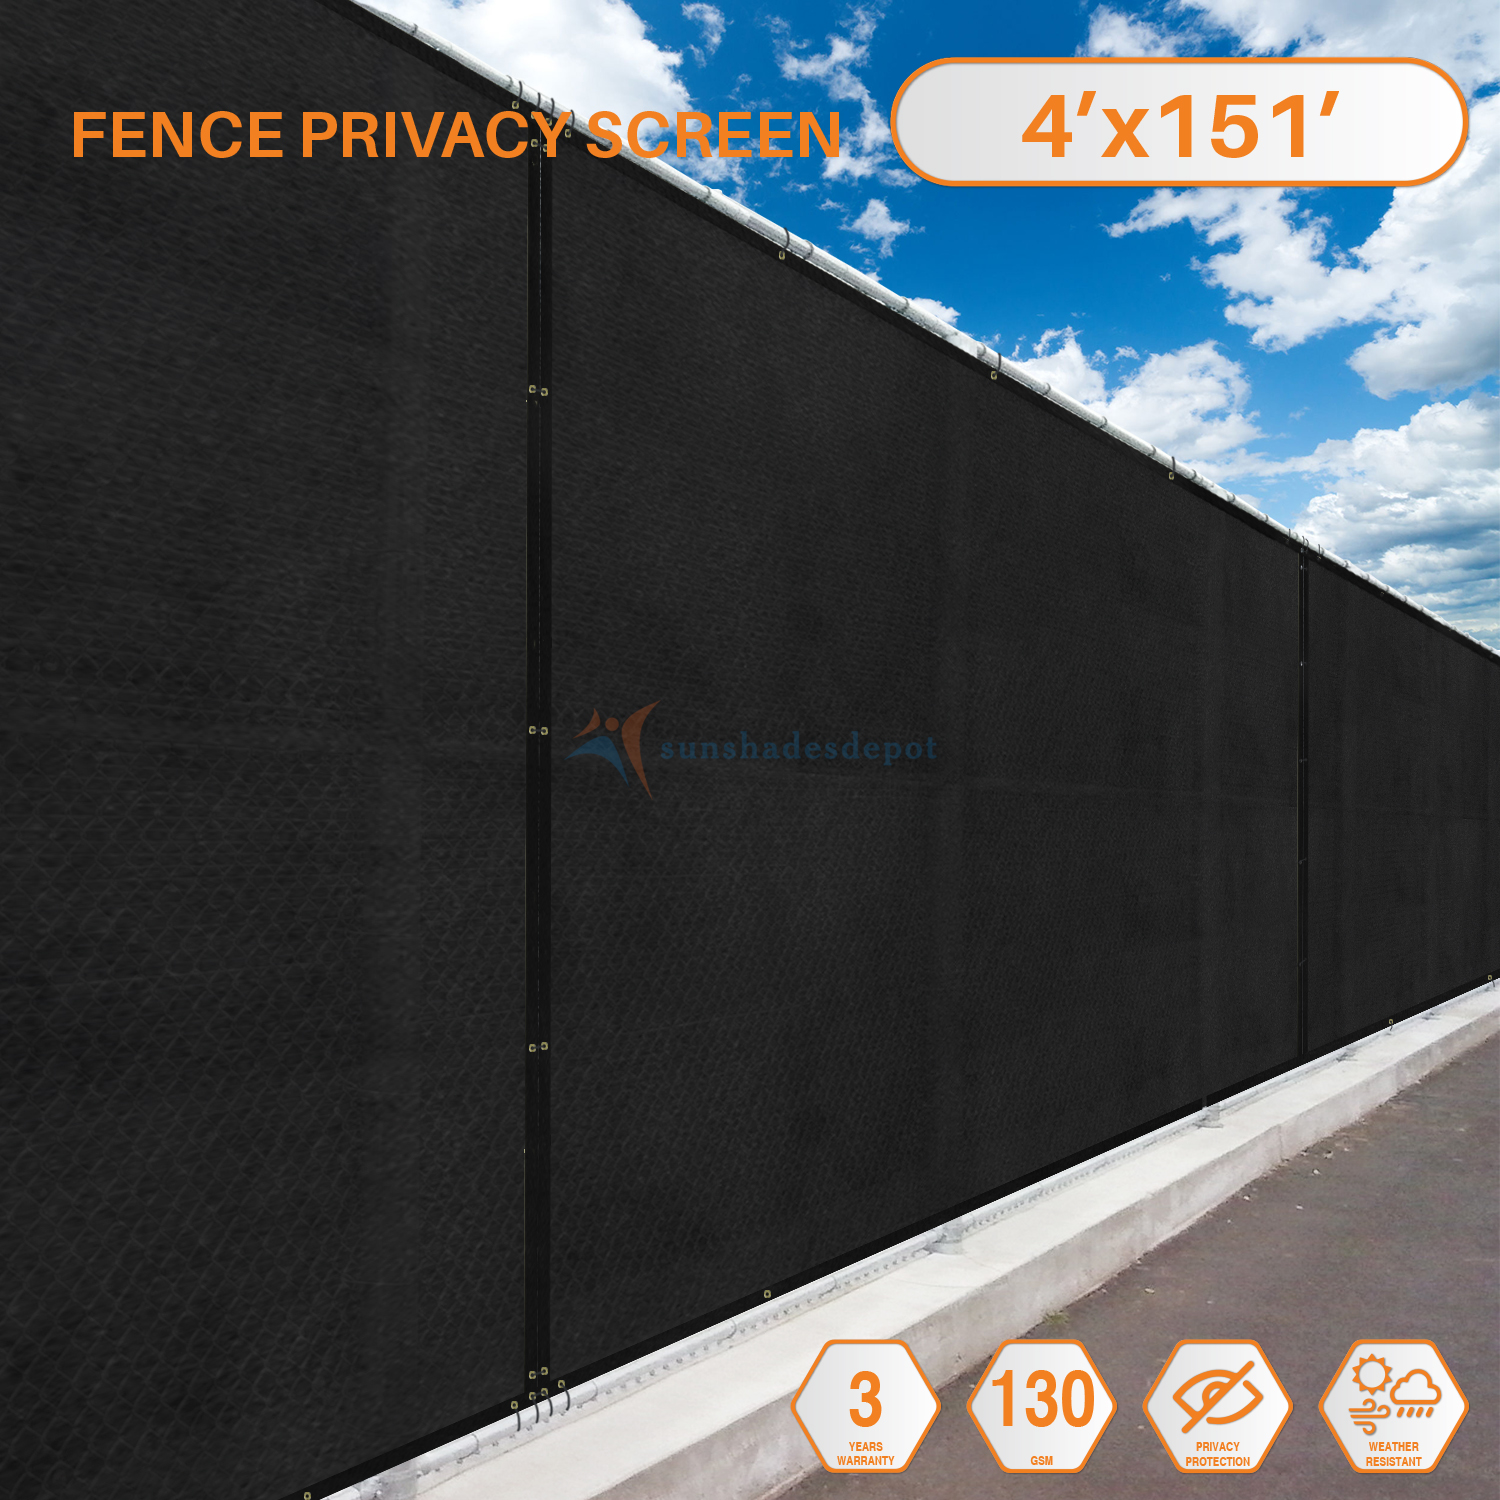 4' Feet x 151' Feet Solid Black Commercial Privacy Fence Screen Custom Available 3 Years... by Sunshades Depot